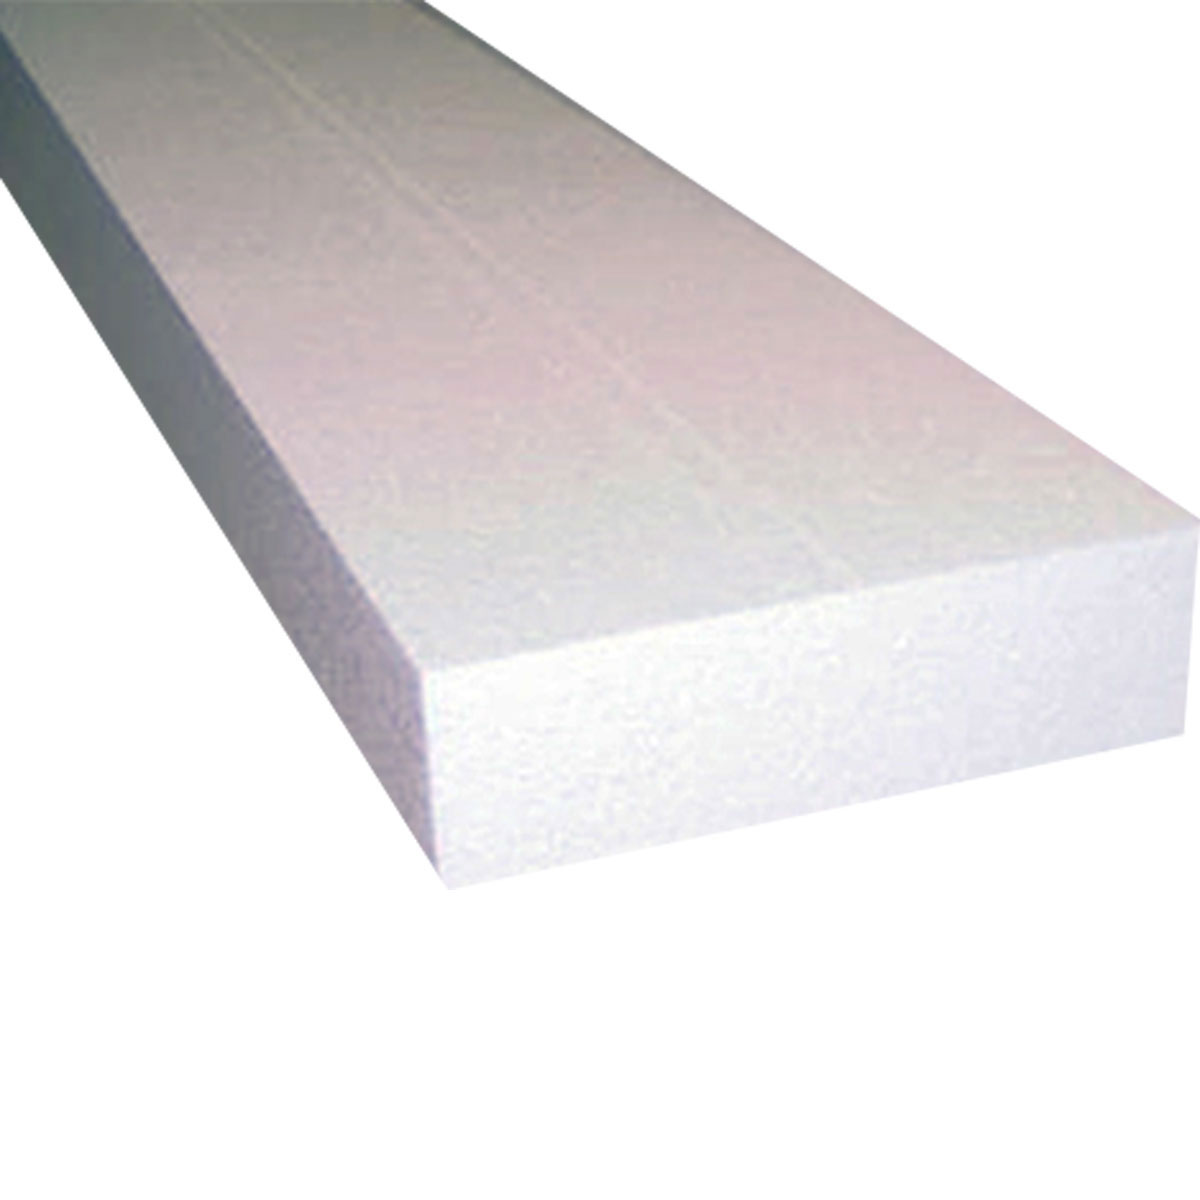 The Foundry 7900000 48 Inch L Fullback Foam Shims 64 Pieces